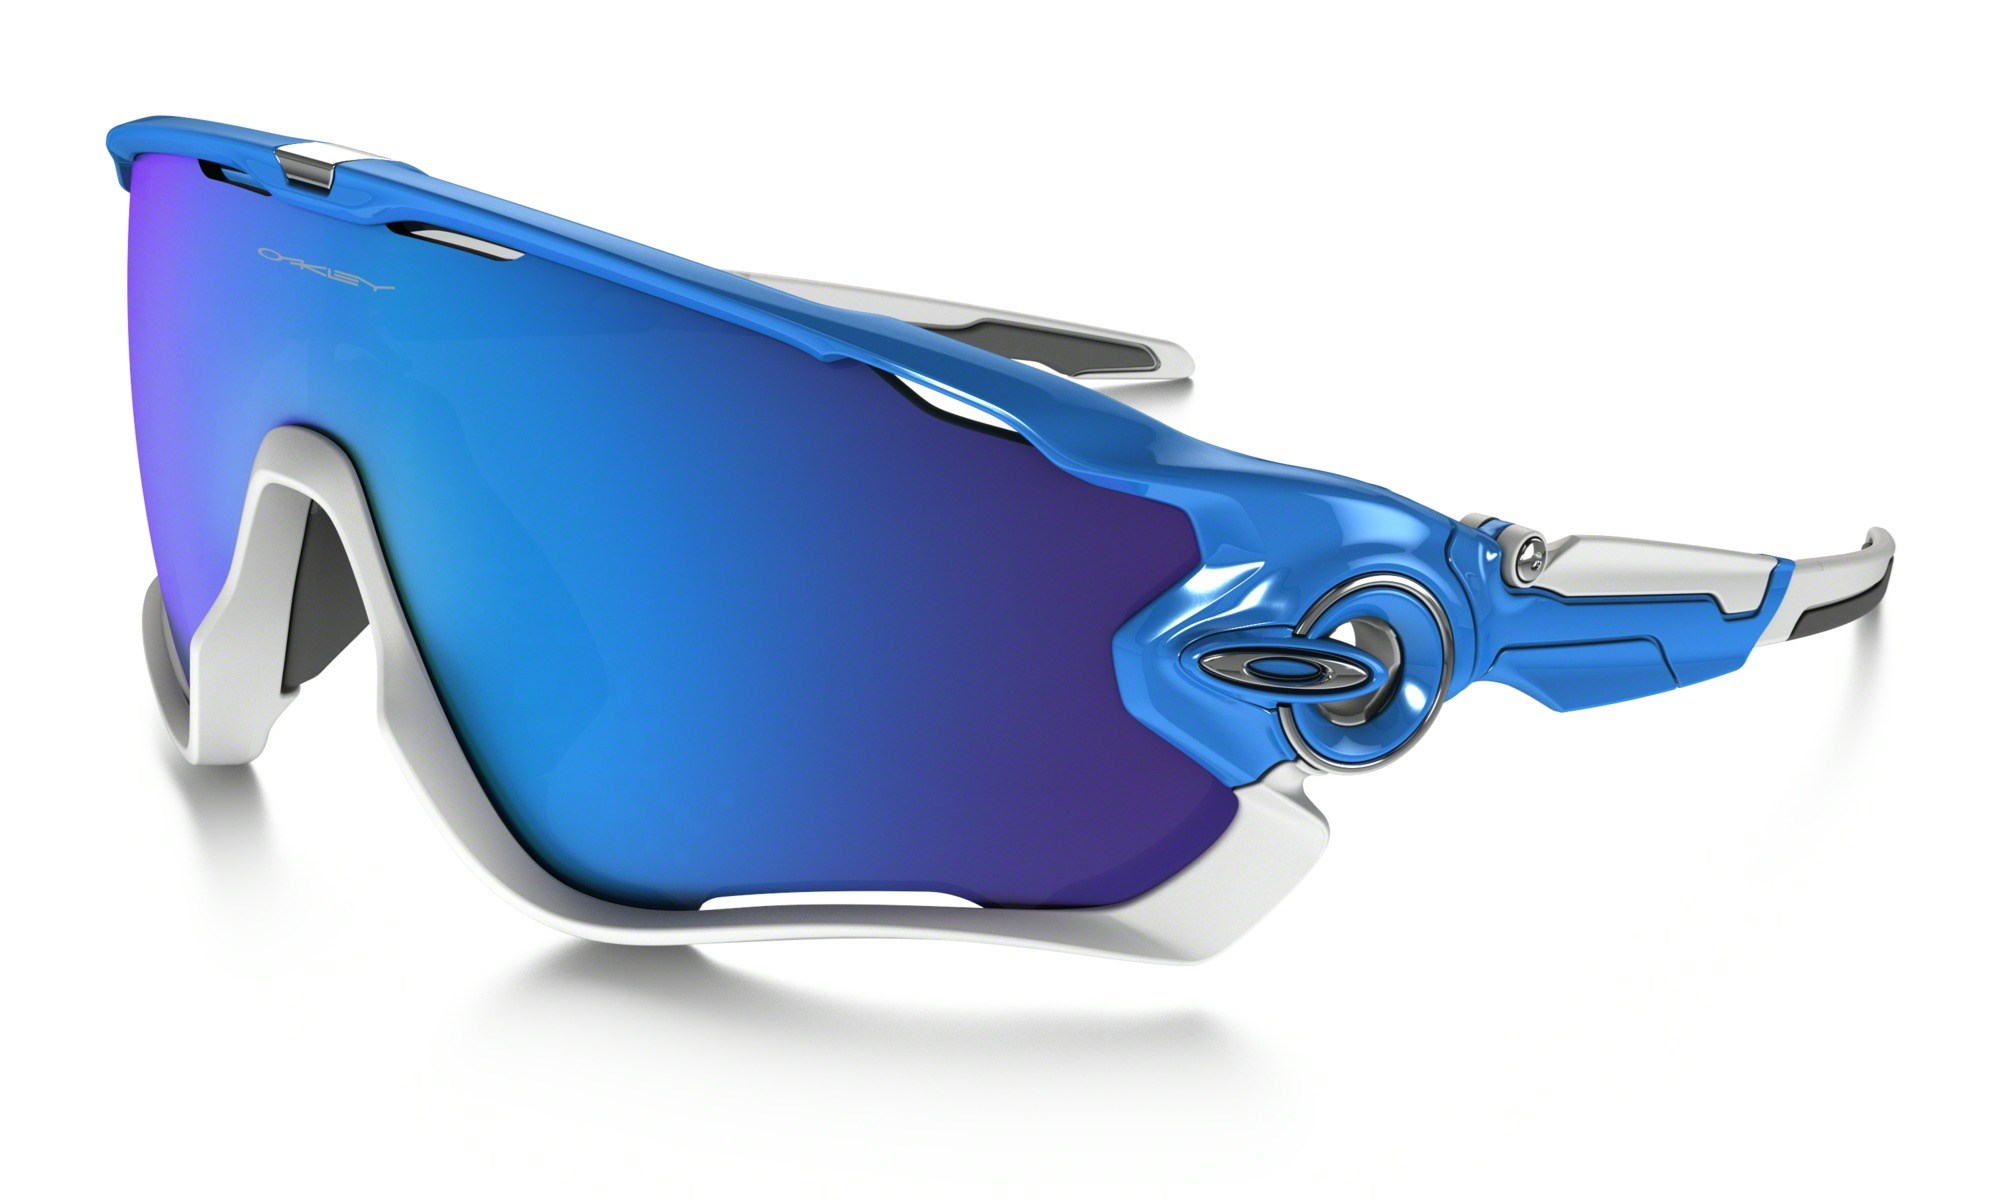 4e09e6441a3 Oakley Jawbreaker Sky Blue Sapphire Iridium. 0 (Be the first to add a  review!)